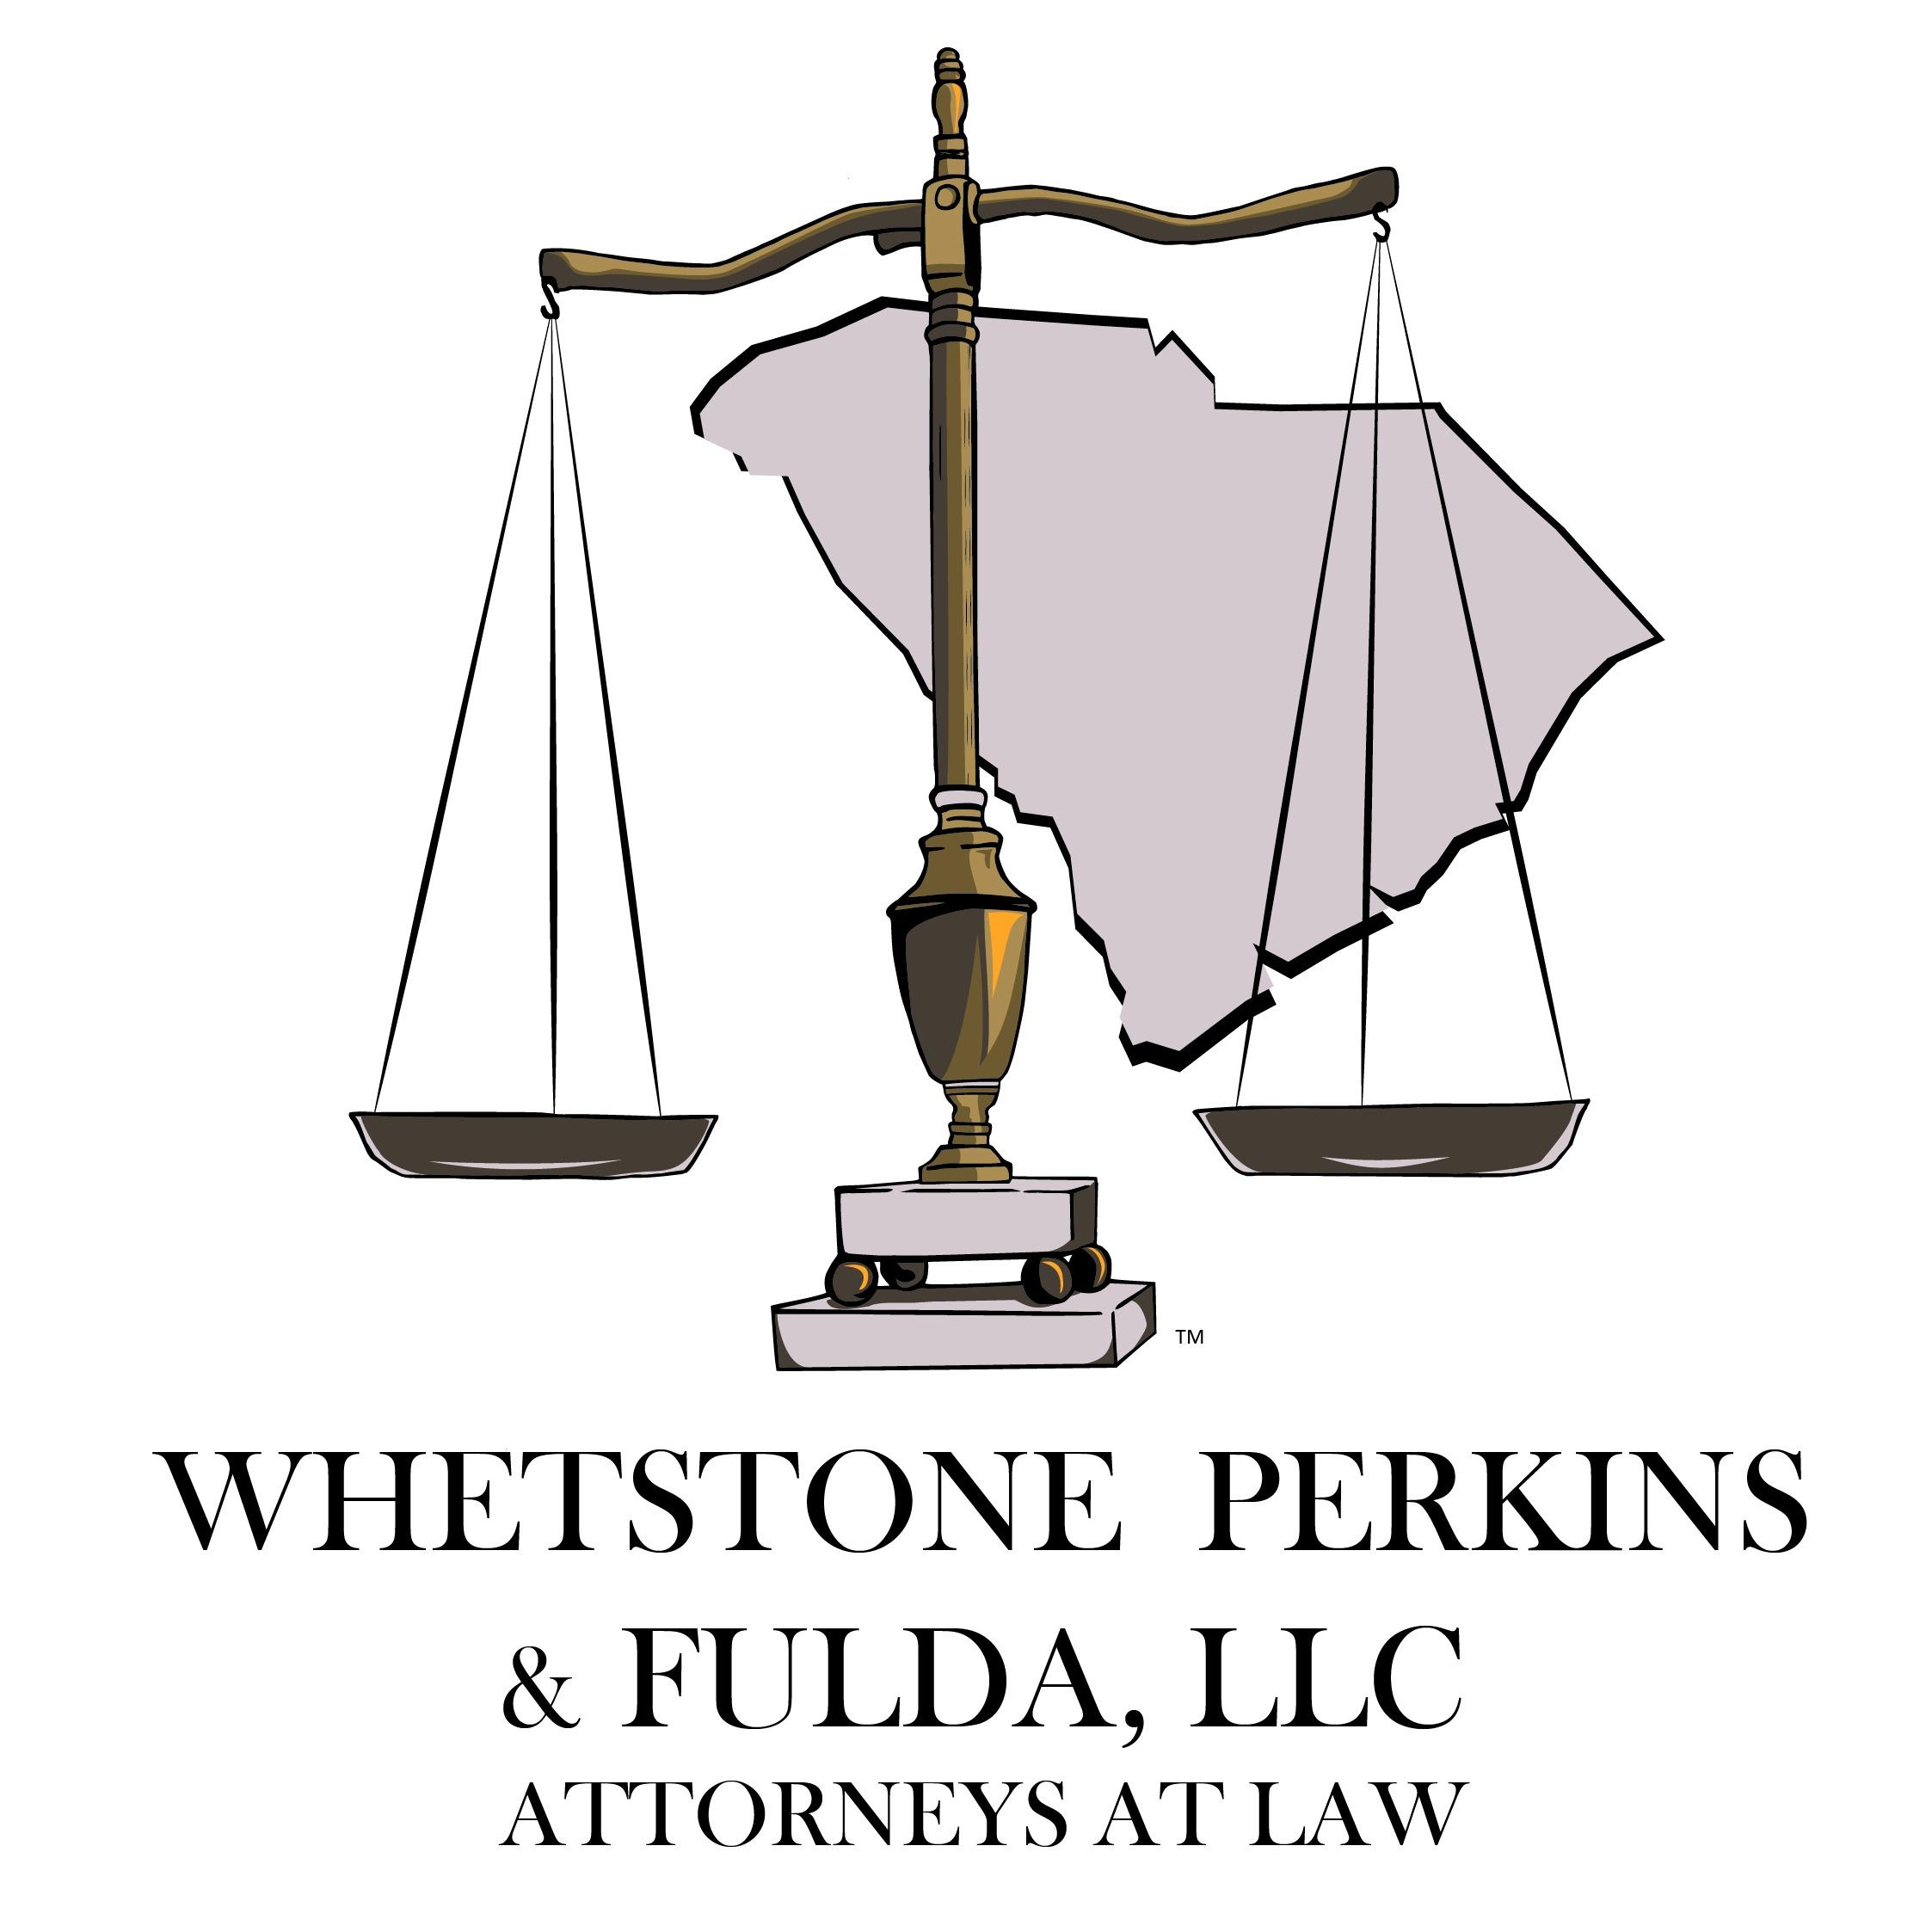 Whetstone Perkins & Fulda, LLC